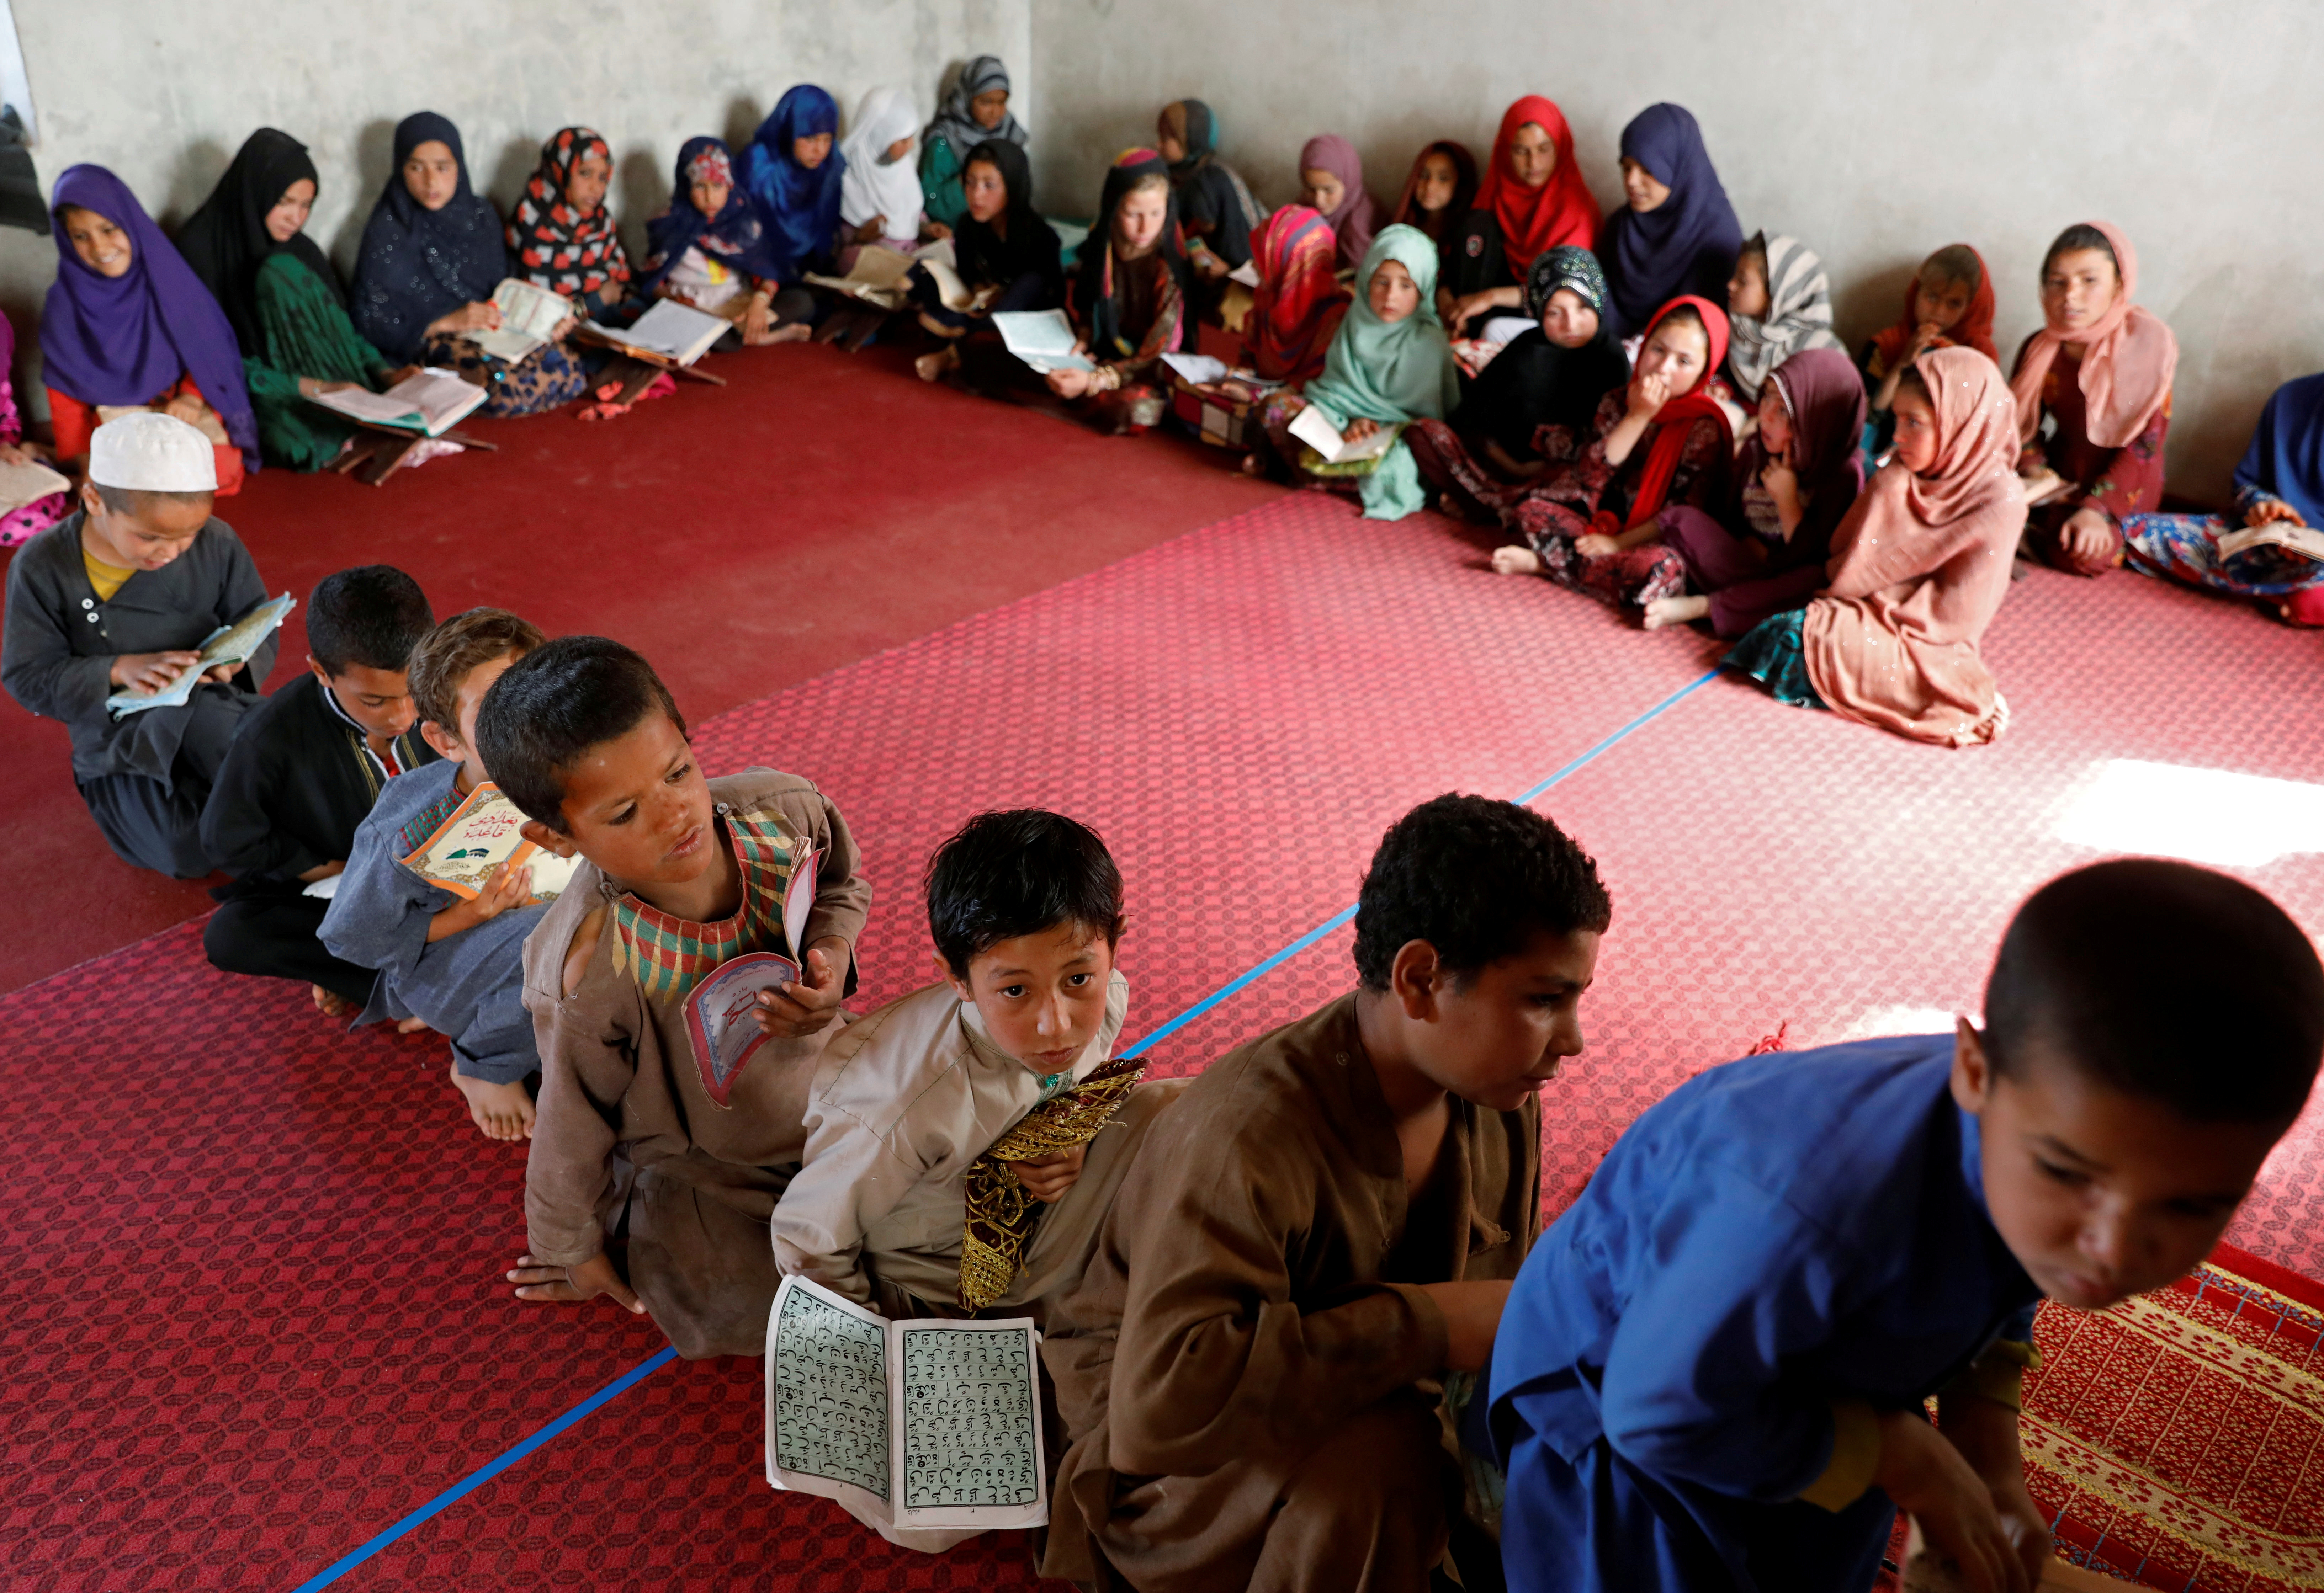 Internally displaced Afghan children read the Koran at a mosque, amidst the spread of the coronavirus disease (COVID-19) during the holy fasting month of Ramadan, in Kabul, Afghanistan May 10, 2020. REUTERS/Mohammad Ismail     TPX IMAGES OF THE DAY